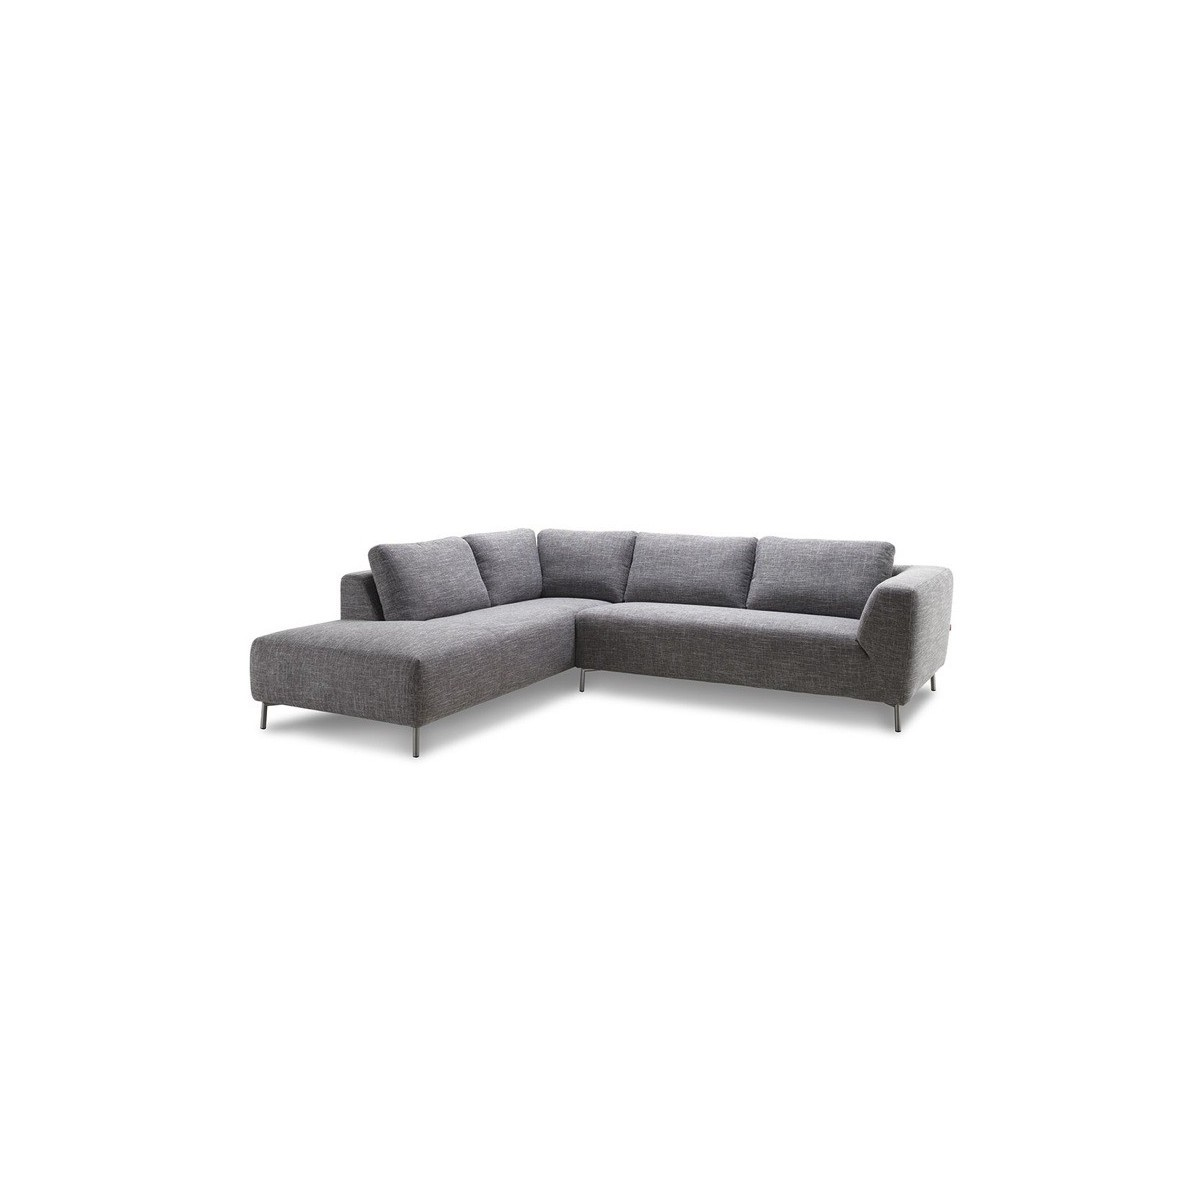 Corner Sofa Design Left 5 Places With Justine Chaise In Fabric Light Grey Amp Story 4165